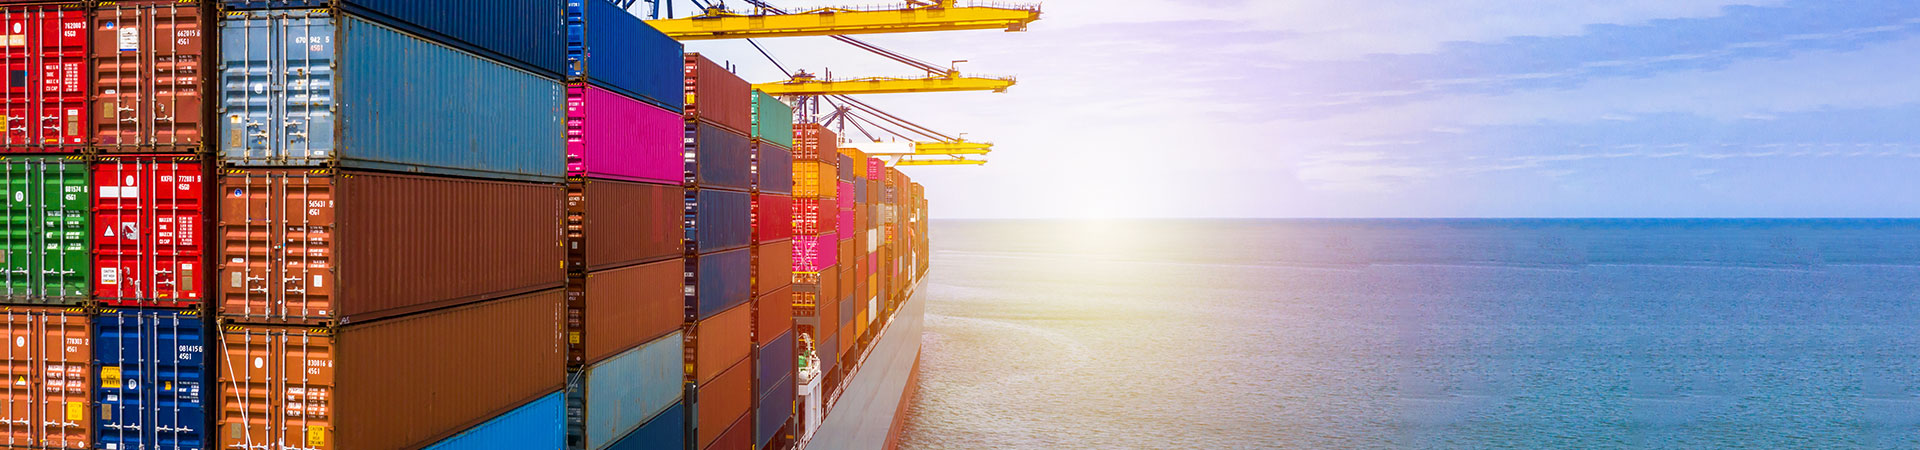 Banner showing Sea Freight with Vessel Container